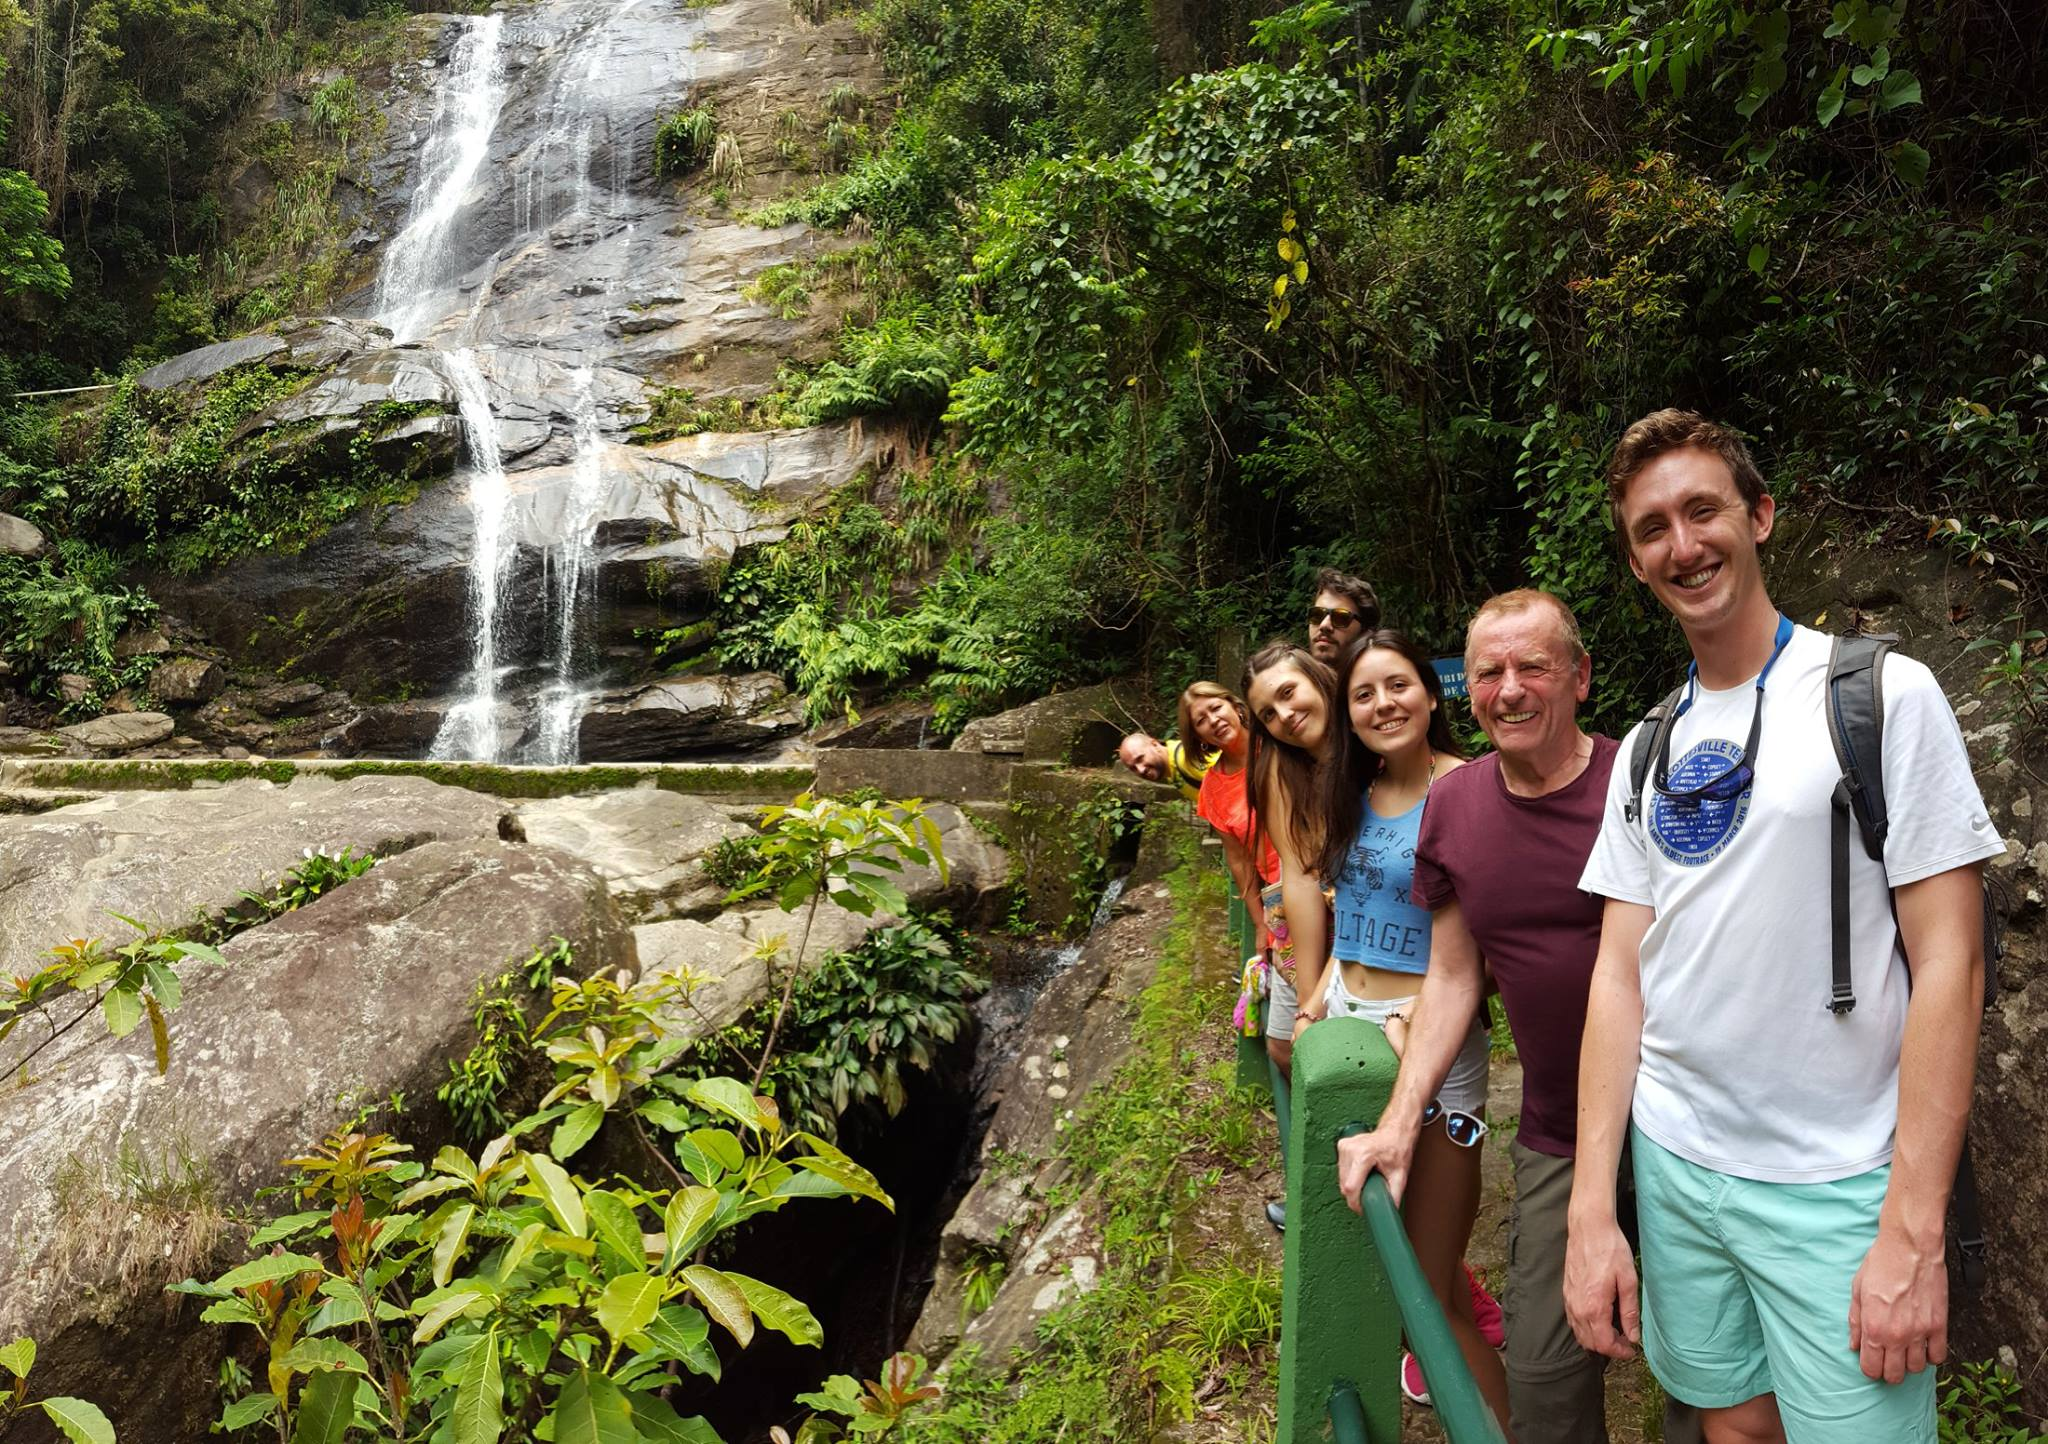 Tijuca Forest Tour on our RioLIVE! Weekend. Discover Rio and Learn Portuguese exploring the Tijuca Forest.